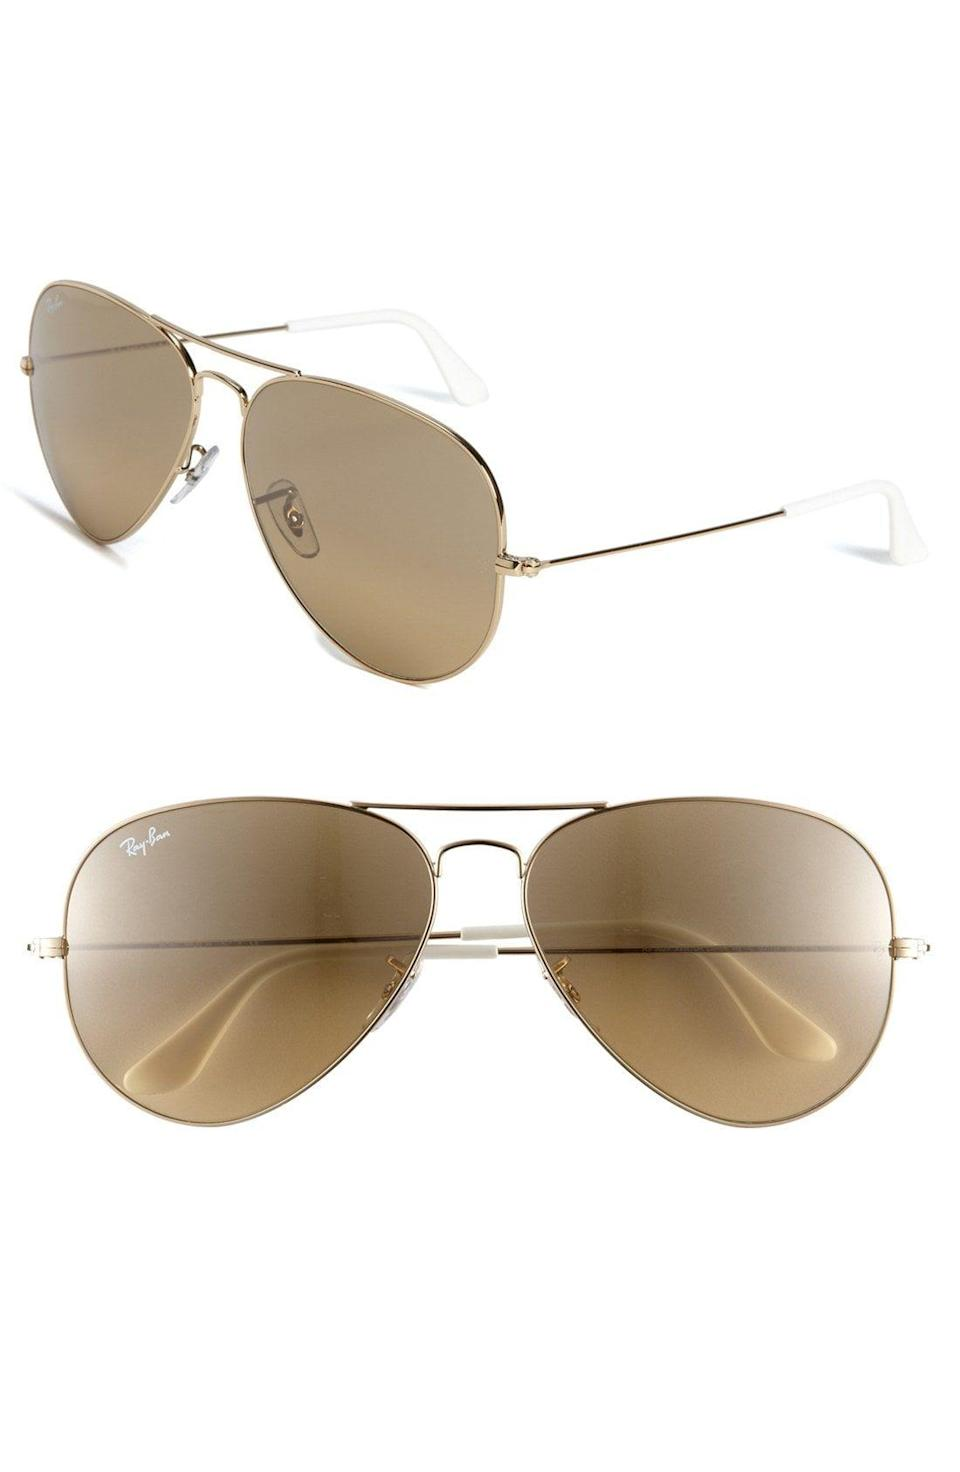 """<p><strong>RAY-BAN</strong></p><p>nordstrom.com</p><p><strong>$179.00</strong></p><p><a href=""""https://go.redirectingat.com?id=74968X1596630&url=https%3A%2F%2Fshop.nordstrom.com%2Fs%2Fray-ban-large-original-62mm-aviator-sunglasses%2F3249199&sref=https%3A%2F%2Fwww.townandcountrymag.com%2Fleisure%2Fg26946158%2Fbest-nanny-gifts%2F"""" rel=""""nofollow noopener"""" target=""""_blank"""" data-ylk=""""slk:Shop Now"""" class=""""link rapid-noclick-resp"""">Shop Now</a></p><p>You can never go wrong with a classic style like Ray-Ban's Aviators.</p>"""